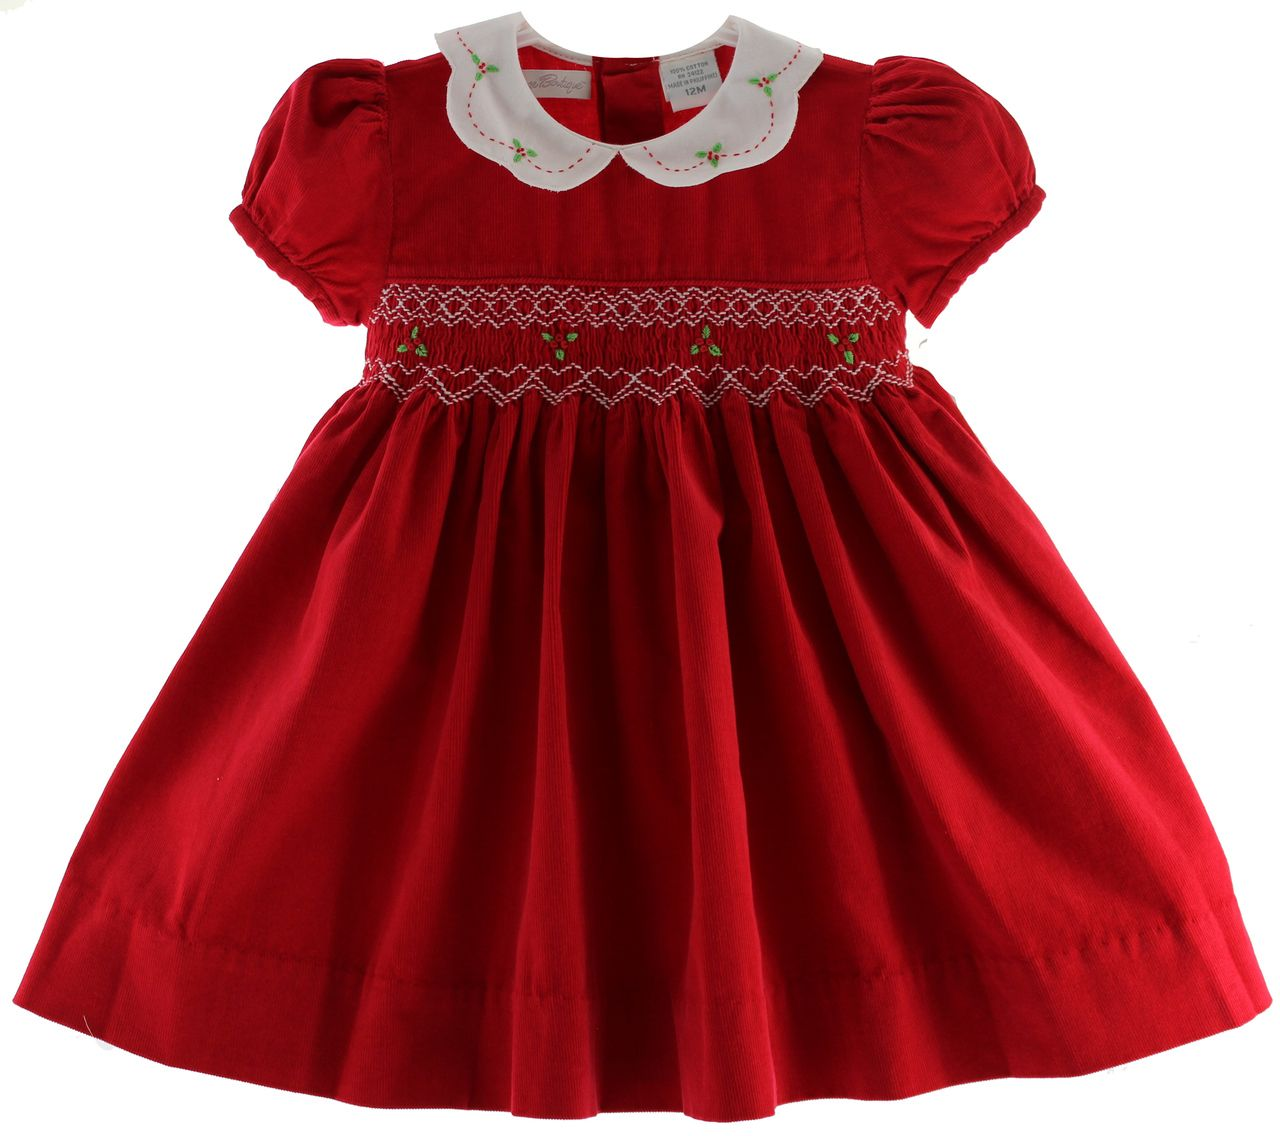 Girls Red Smocked Corduroy Christmas Dress with White Collar